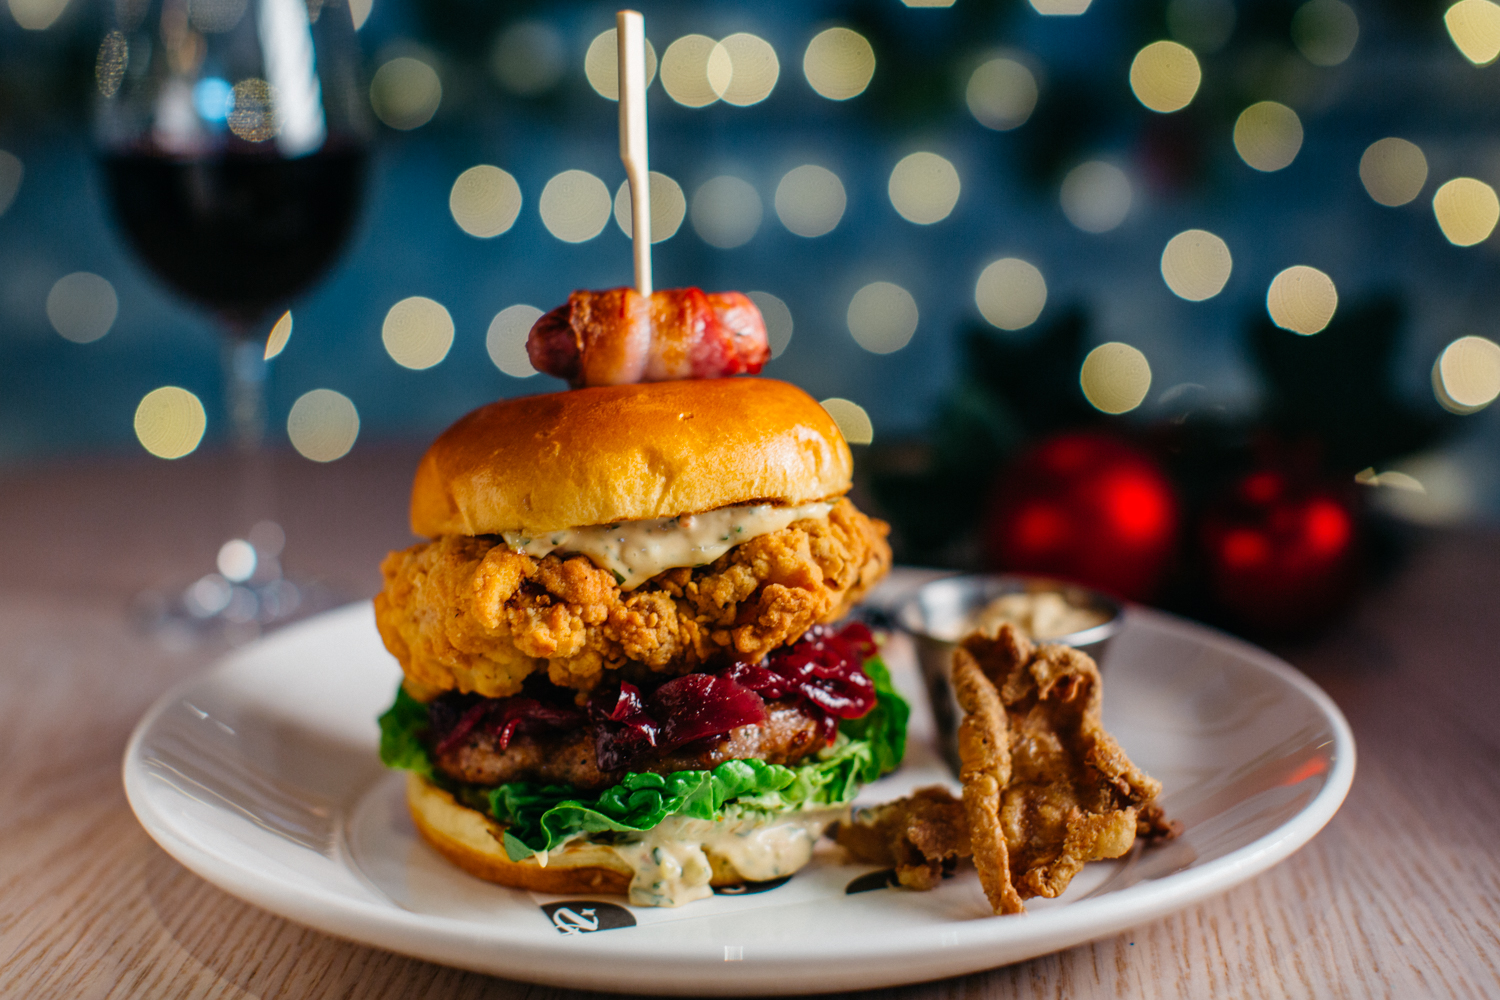 London's Best Christmas Burgers, London's Best Christmas Burgers 2018, Best Christmas Burgers in london,